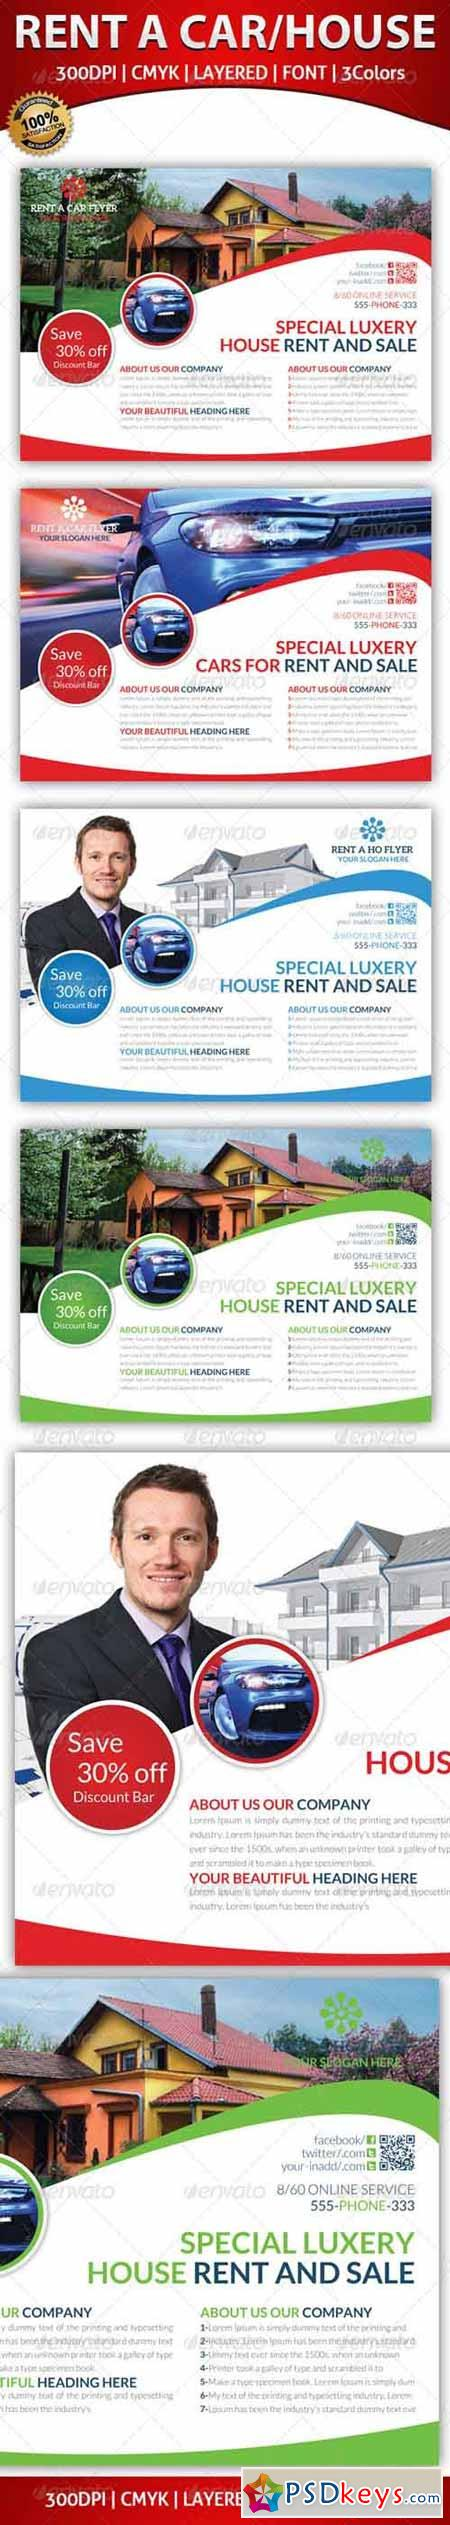 Rent A House And Car Flyer Template 5934293